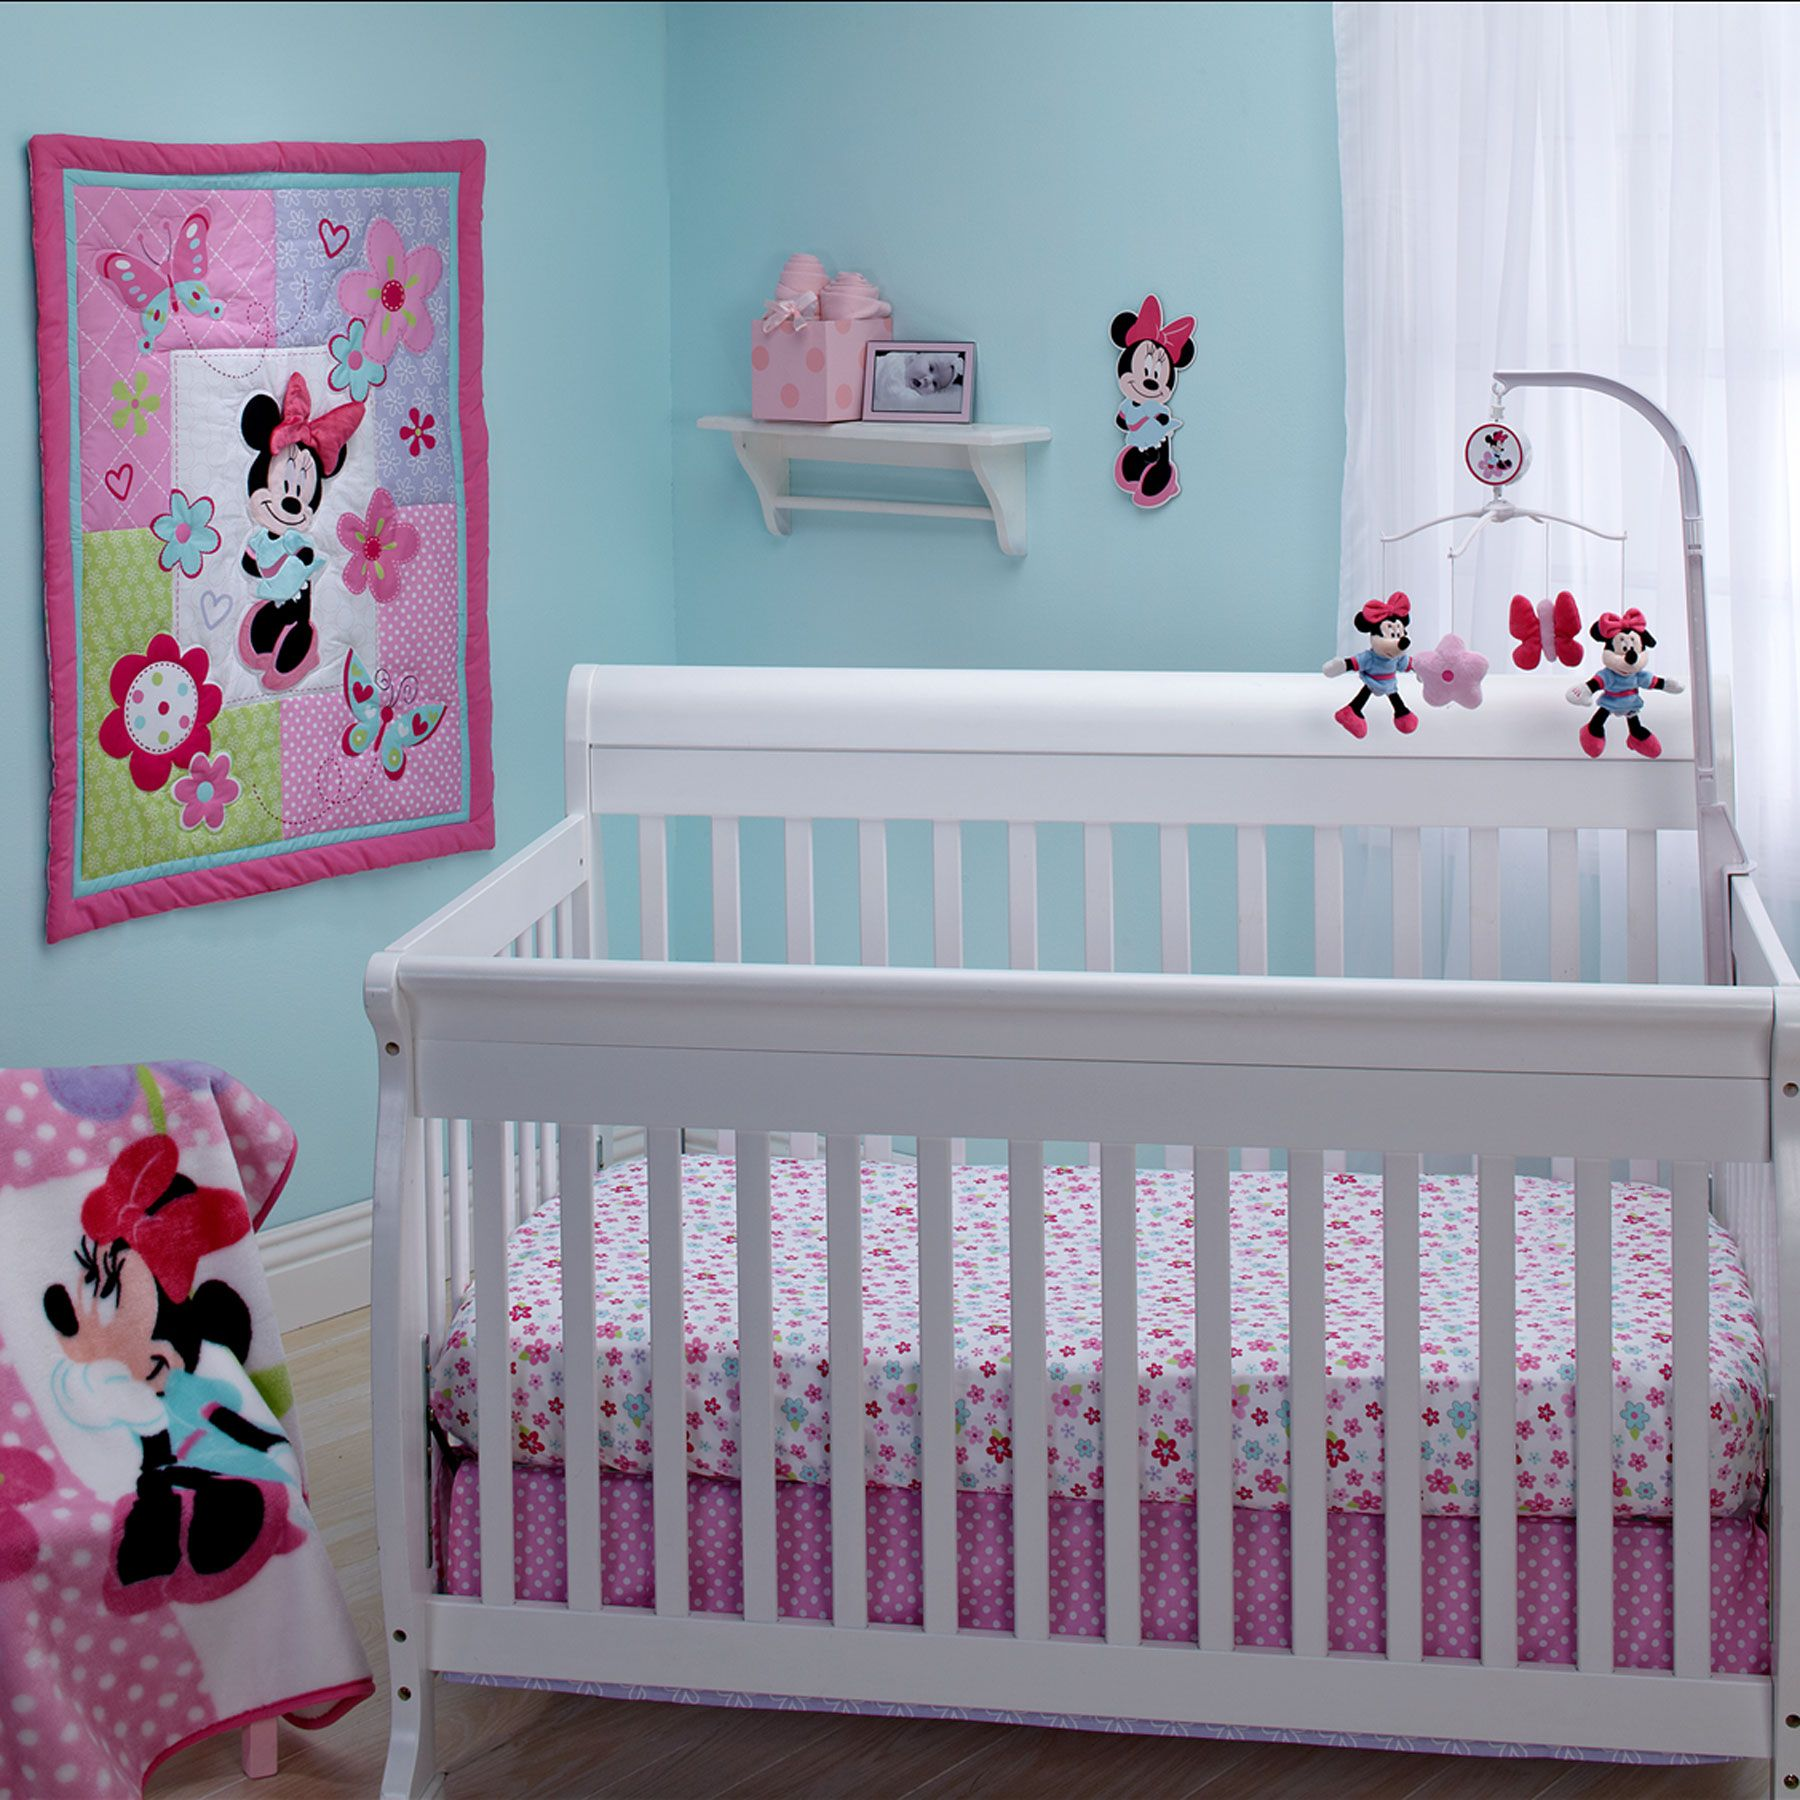 Minnie Mouse, whimsical flowers and butterflies in cheerful shades ...